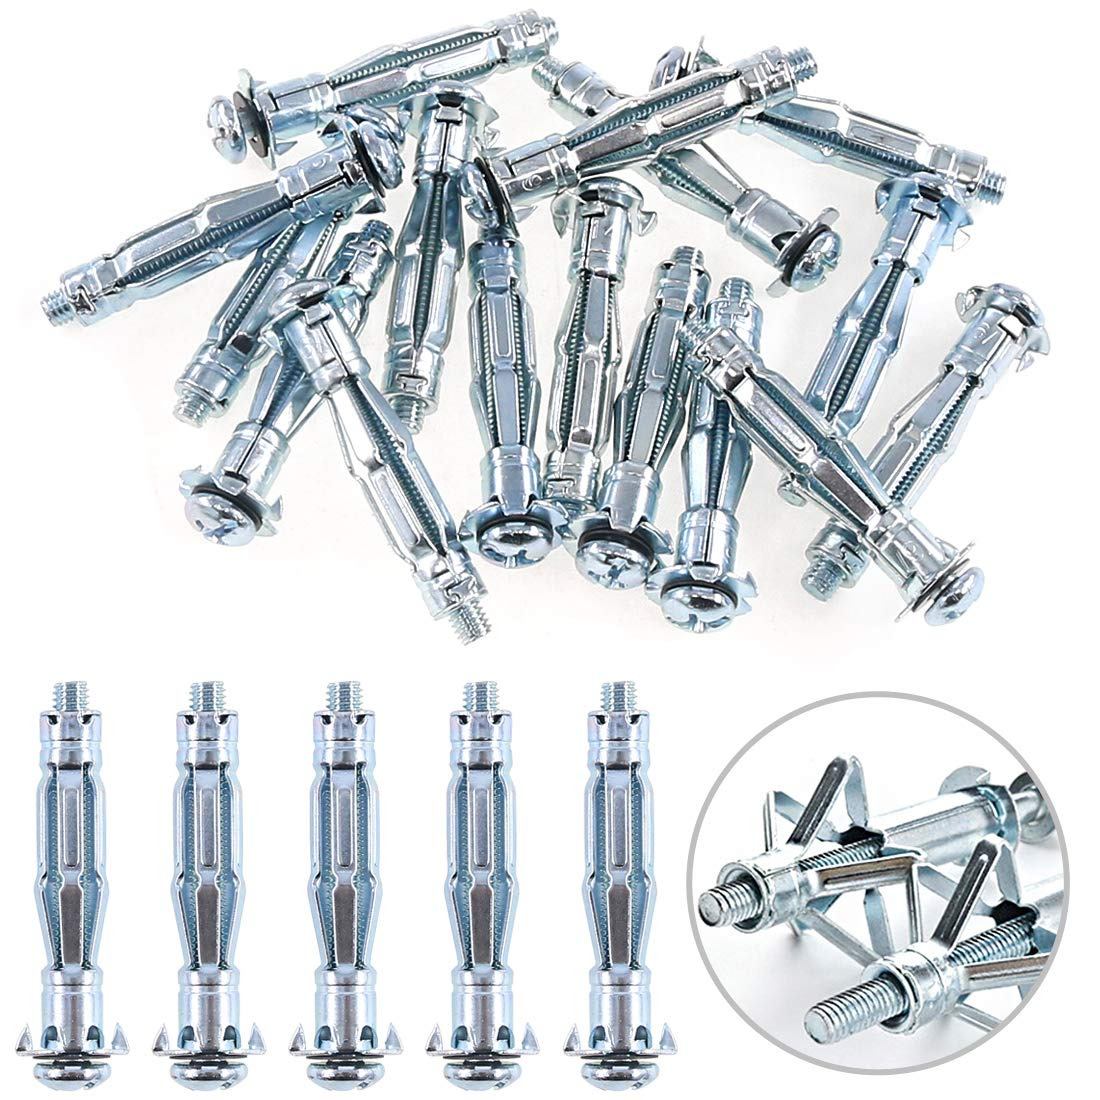 Glarks 30Pcs 6x52MM Heavy Duty Zinc Plated Steel Molly Bolt Hollow Drive Wall Anchor Screws Set for Drywall, Plaster and Tile (M6x52)